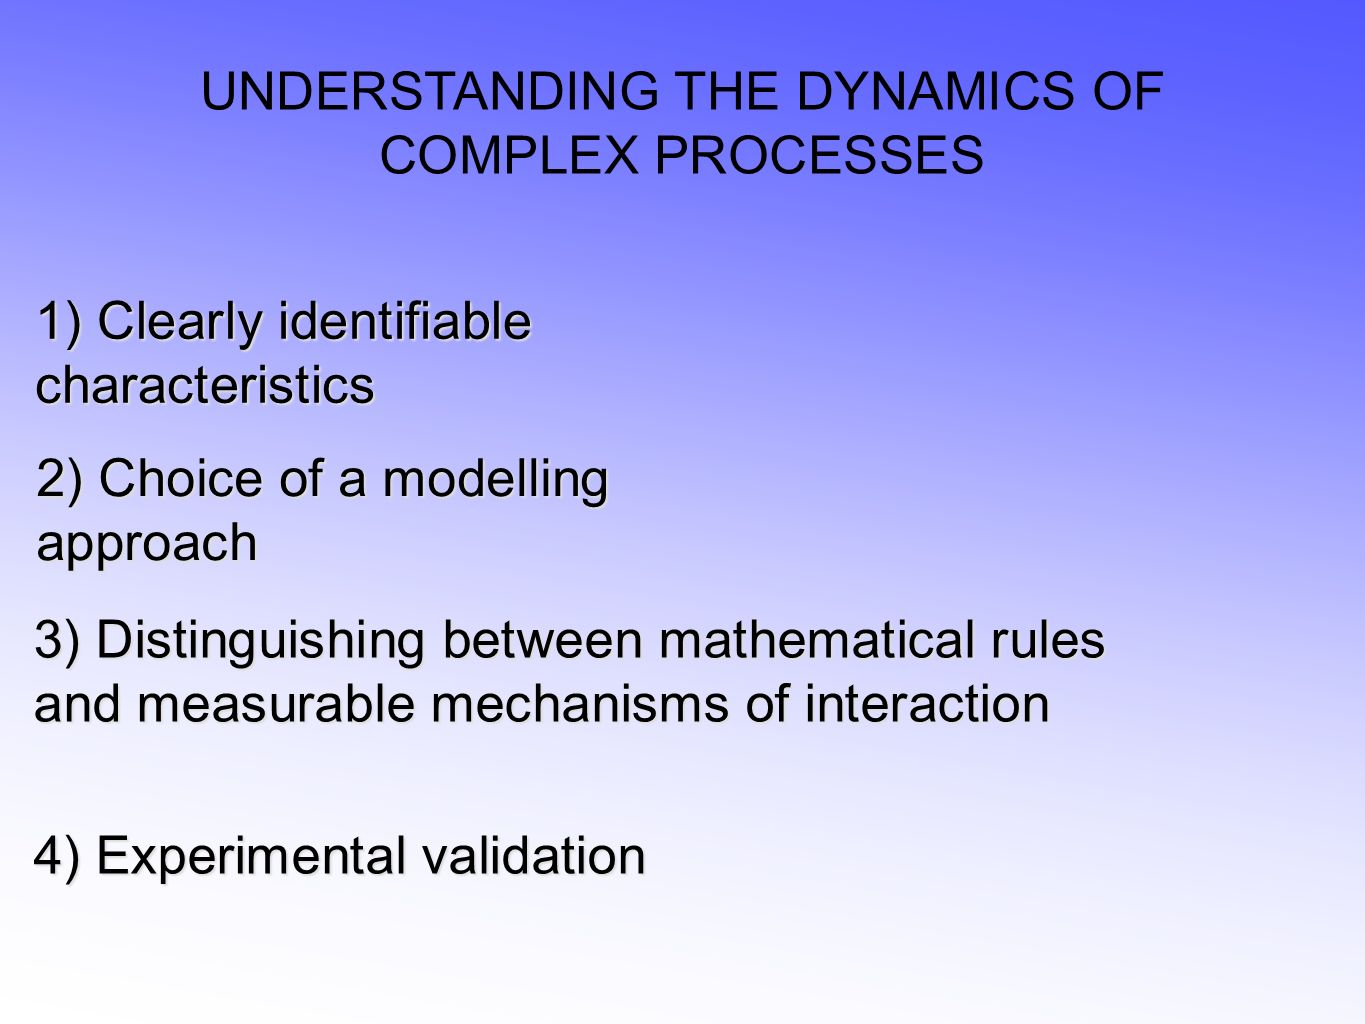 UNDERSTANDING THE DYNAMICS OF COMPLEX PROCESSES 2) Choice of a modelling approach 3) Distinguishing between mathematical rules and measurable mechanisms of interaction 4) Experimental validation 1) Clearly identifiable characteristics